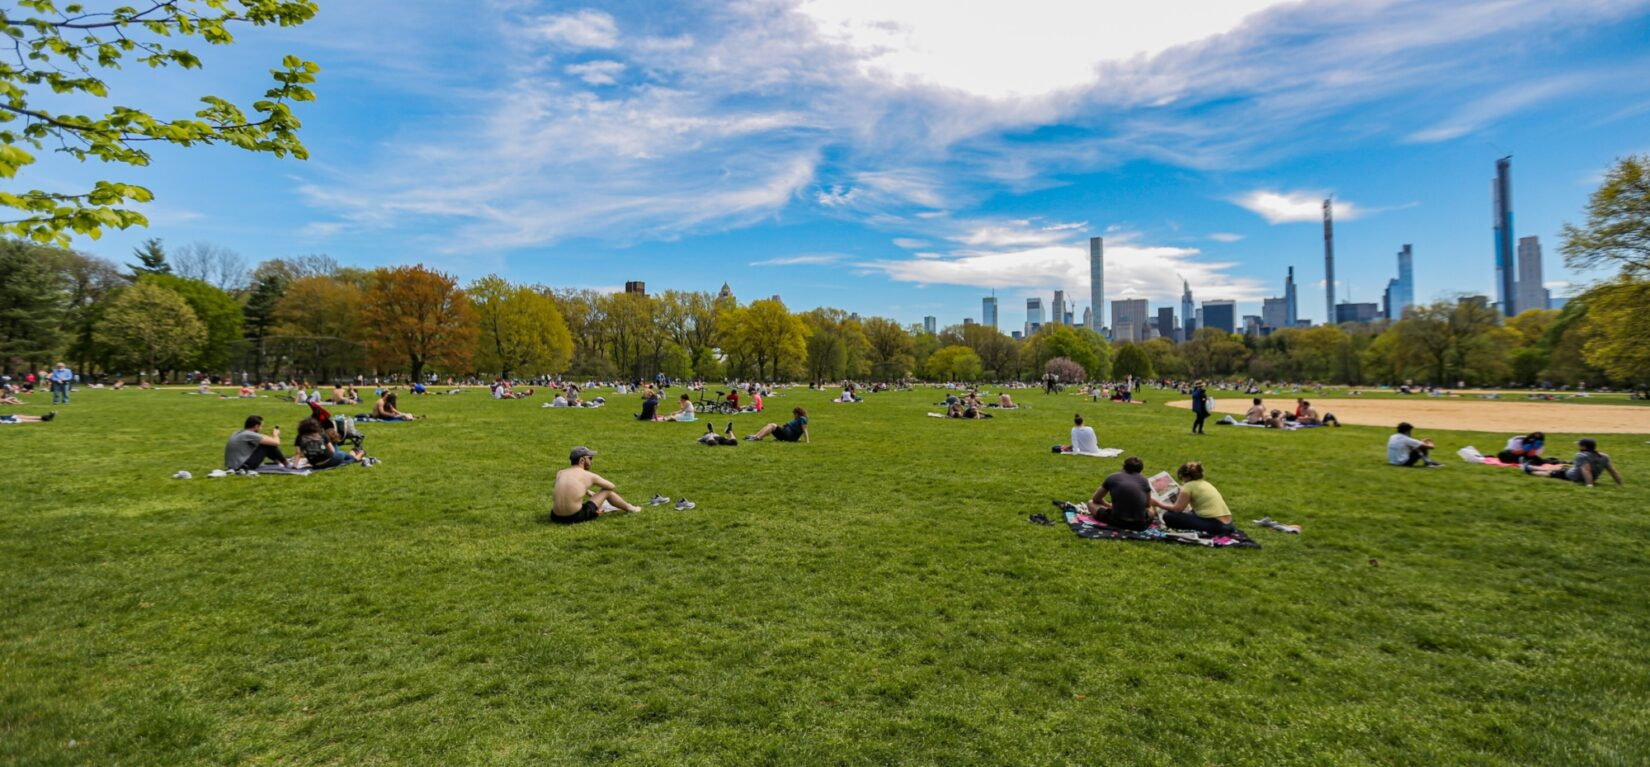 The Great Lawn in summer, with the skyline behind it